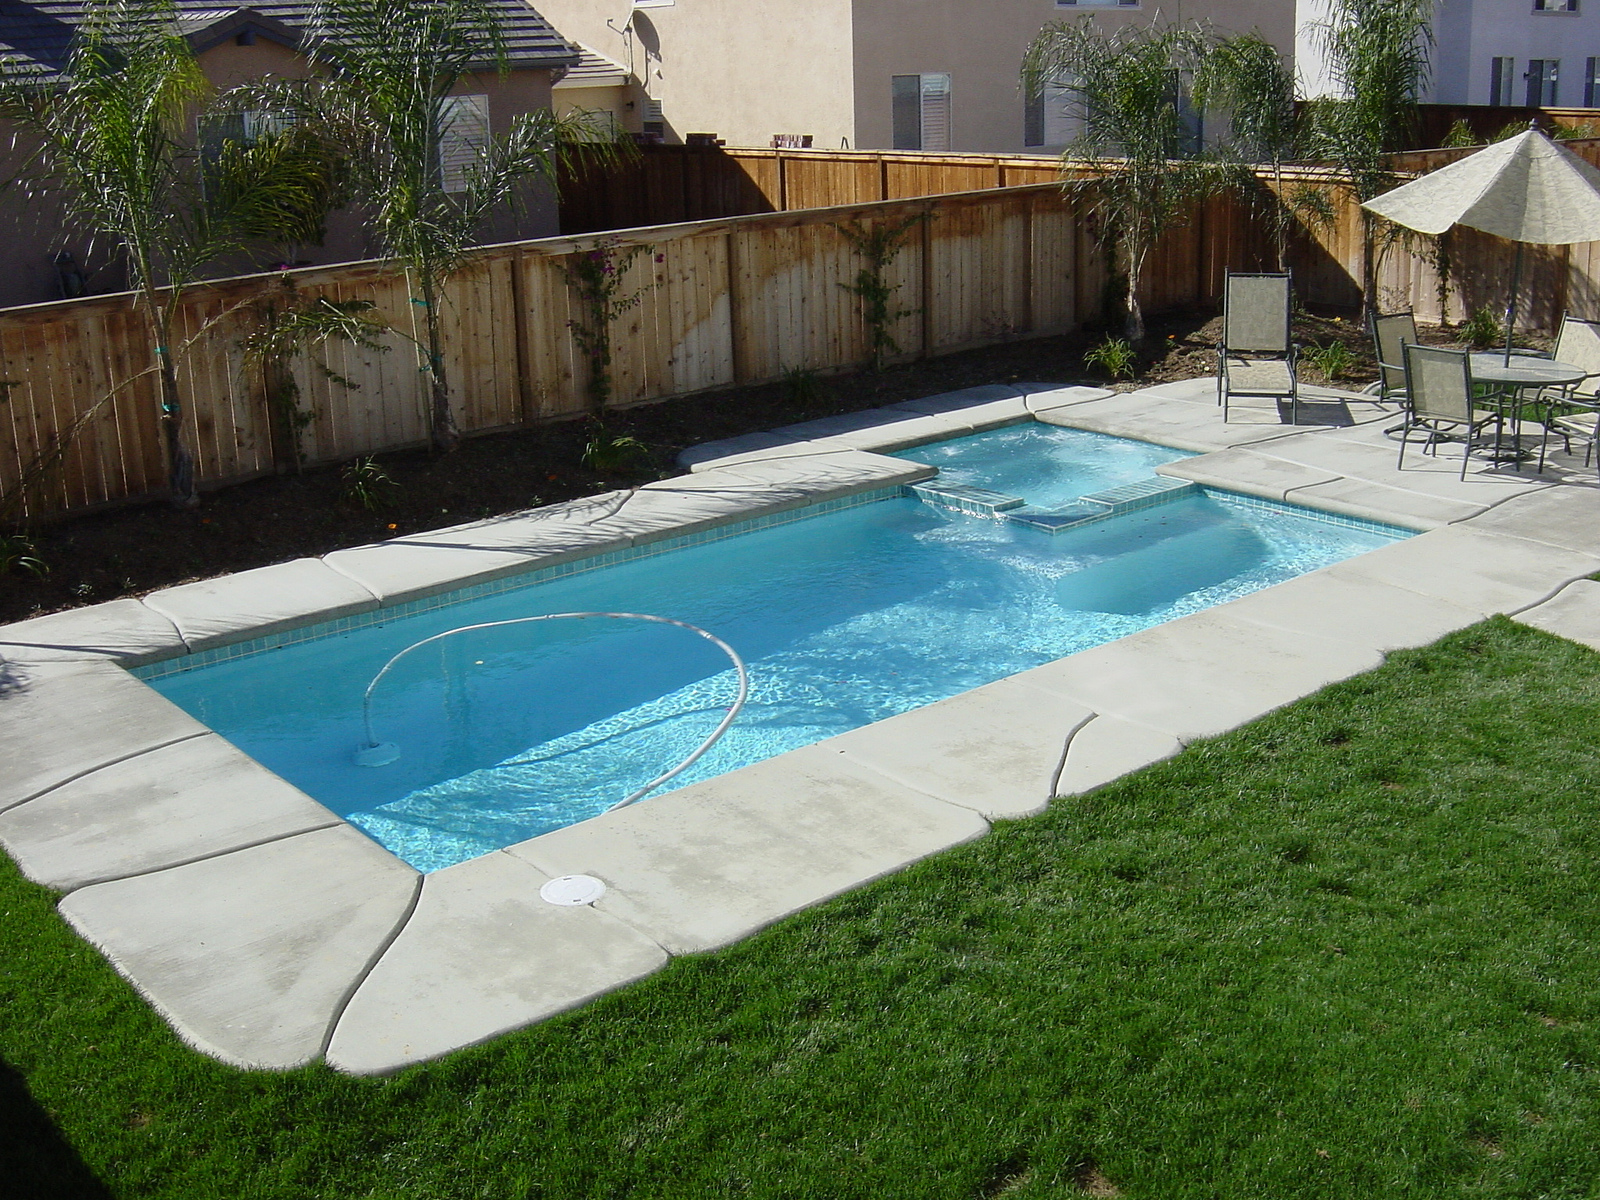 Rectangular pool designs homesfeed for Pool designs images